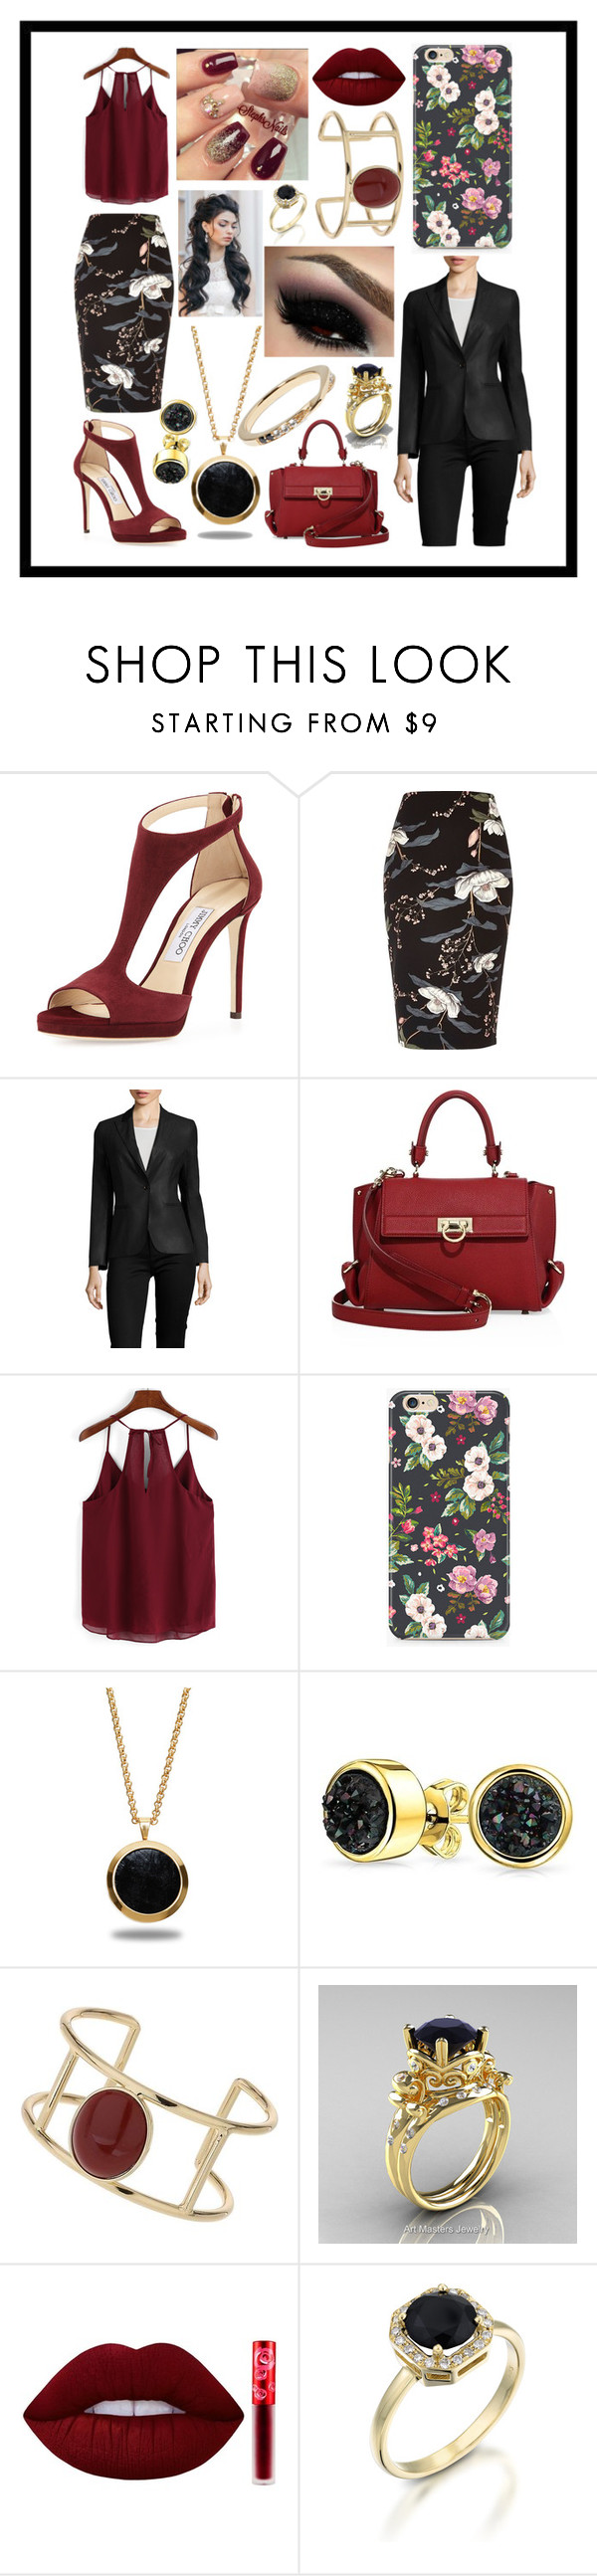 """Simply Feeling Like A Bawse"" by sodenoshirayuki-kuran ❤ liked on Polyvore featuring Jimmy Choo, River Island, MaxMara, Salvatore Ferragamo, Marlin Birna, Bling Jewelry, Miss Selfridge, Lime Crime and Elizabeth and James"